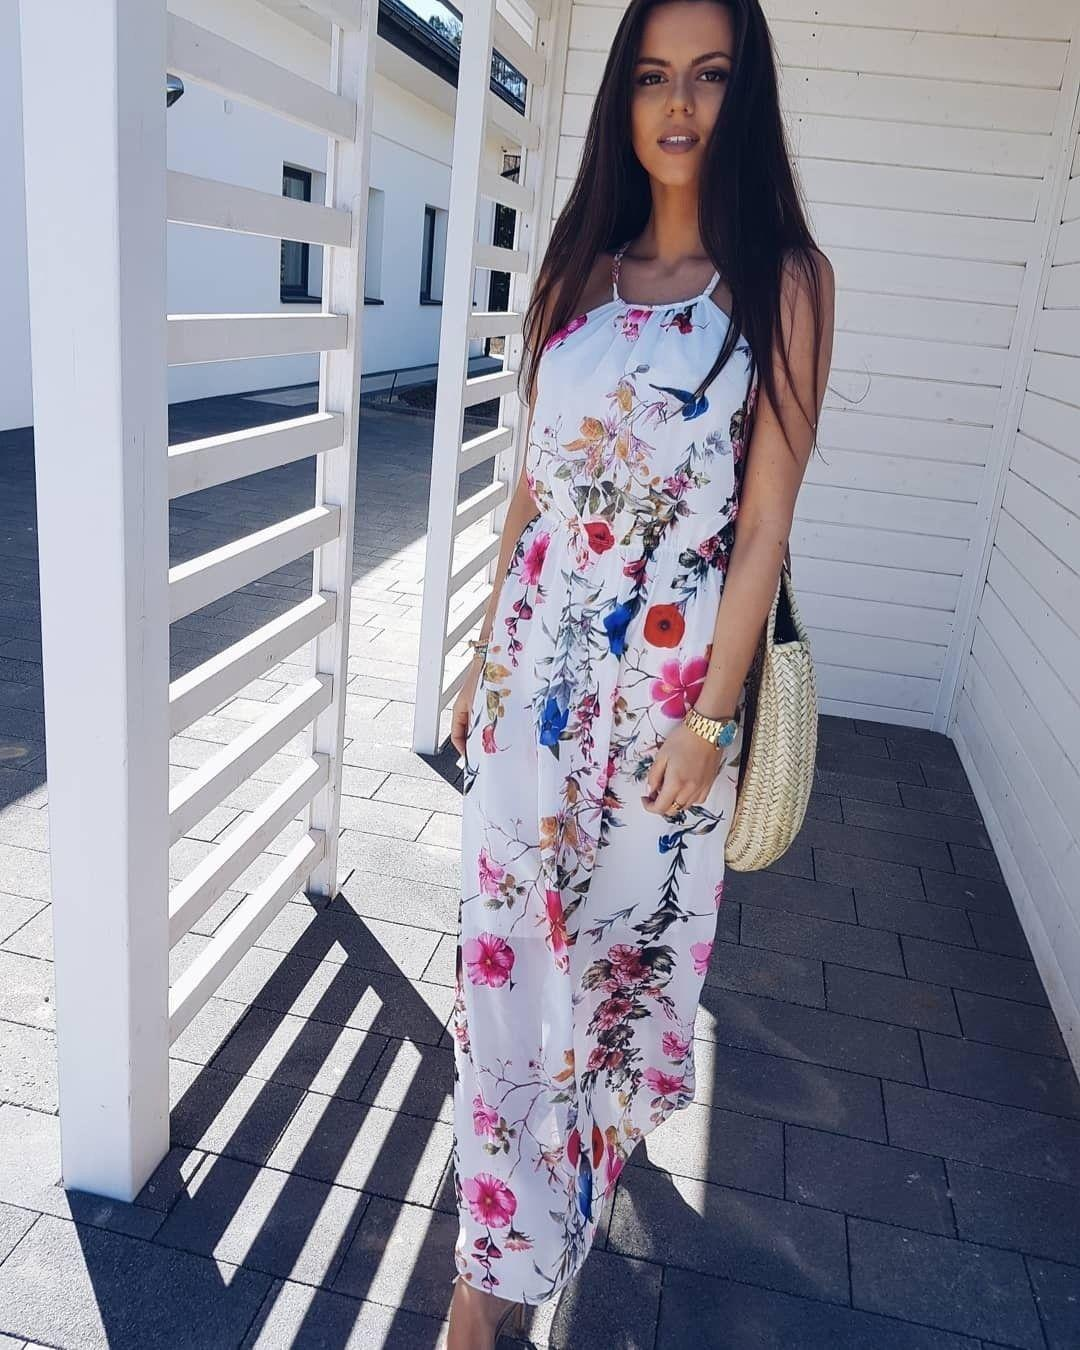 6e8fe1dabc8a Stylish Women Boho Floral Dress Summer Beach Sleeveless Evening Party Long  Maxi Dress Bohemian Beach Dress Purple Dresses For Juniors Party Cocktail  Dresses ...